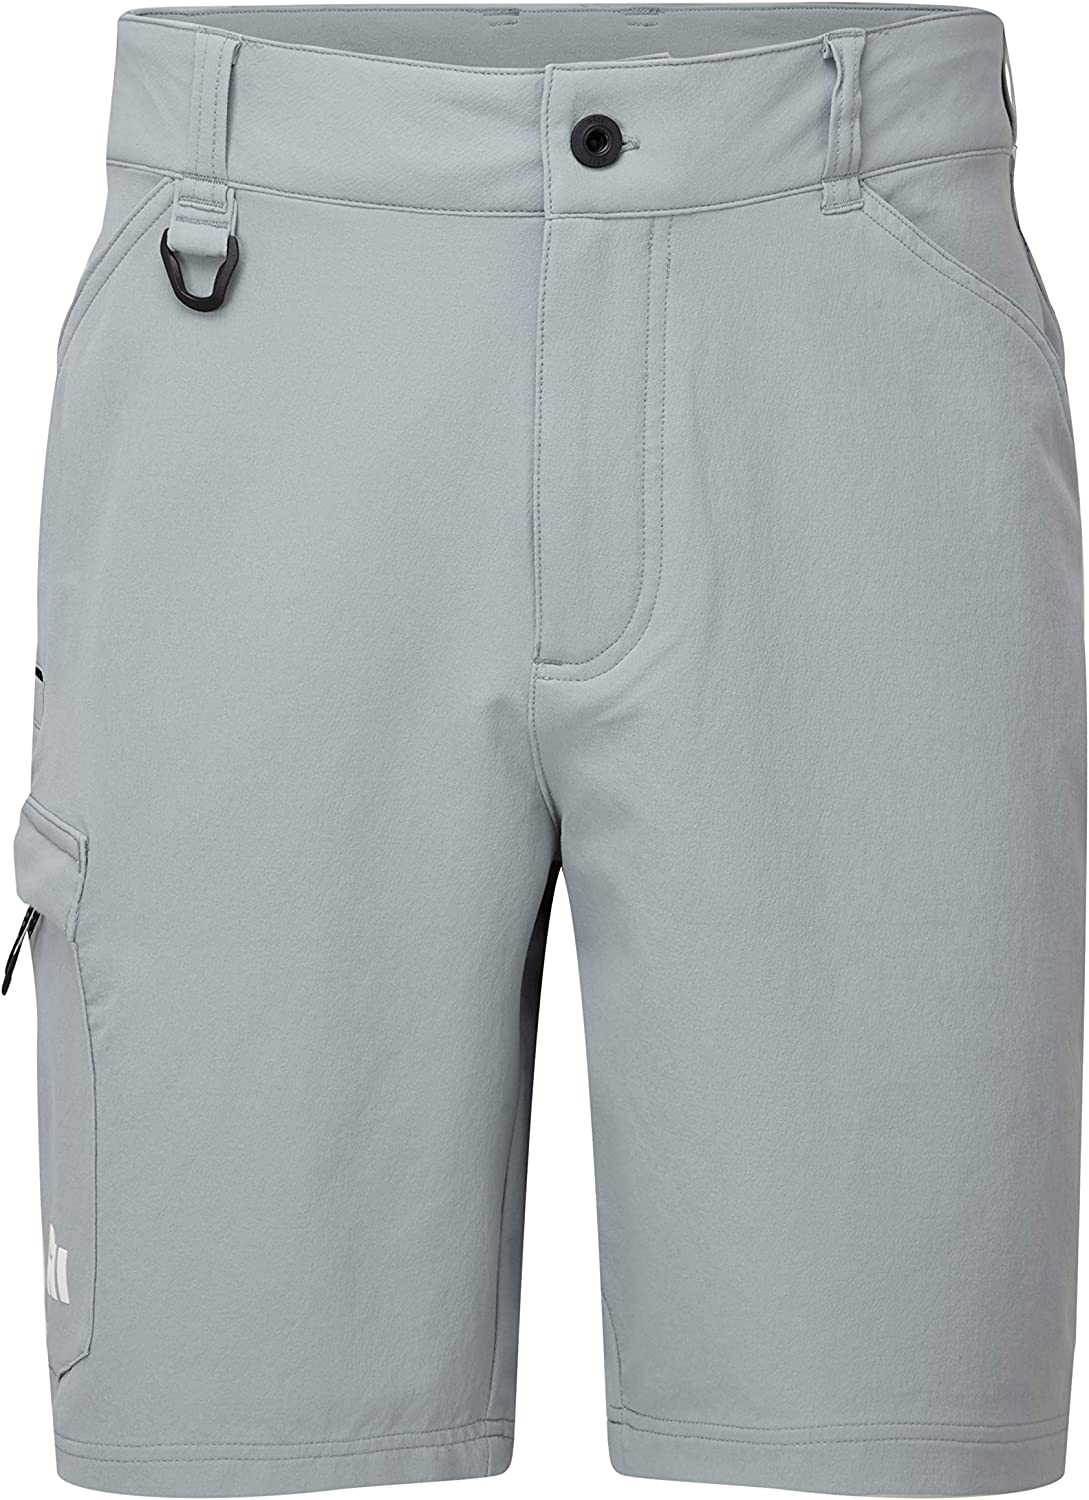 Long-awaited GILL Men's Expedition Shorts Max 47% OFF